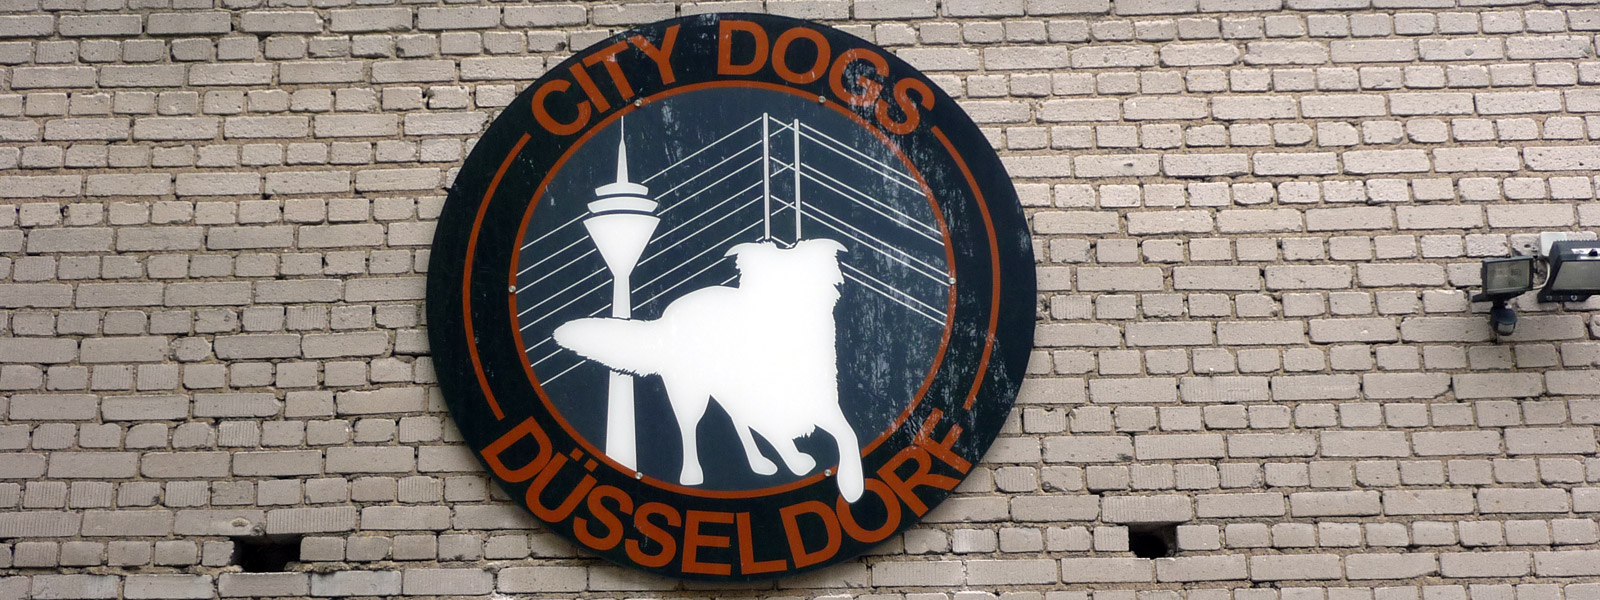 City Dogs Umbauarbeiten